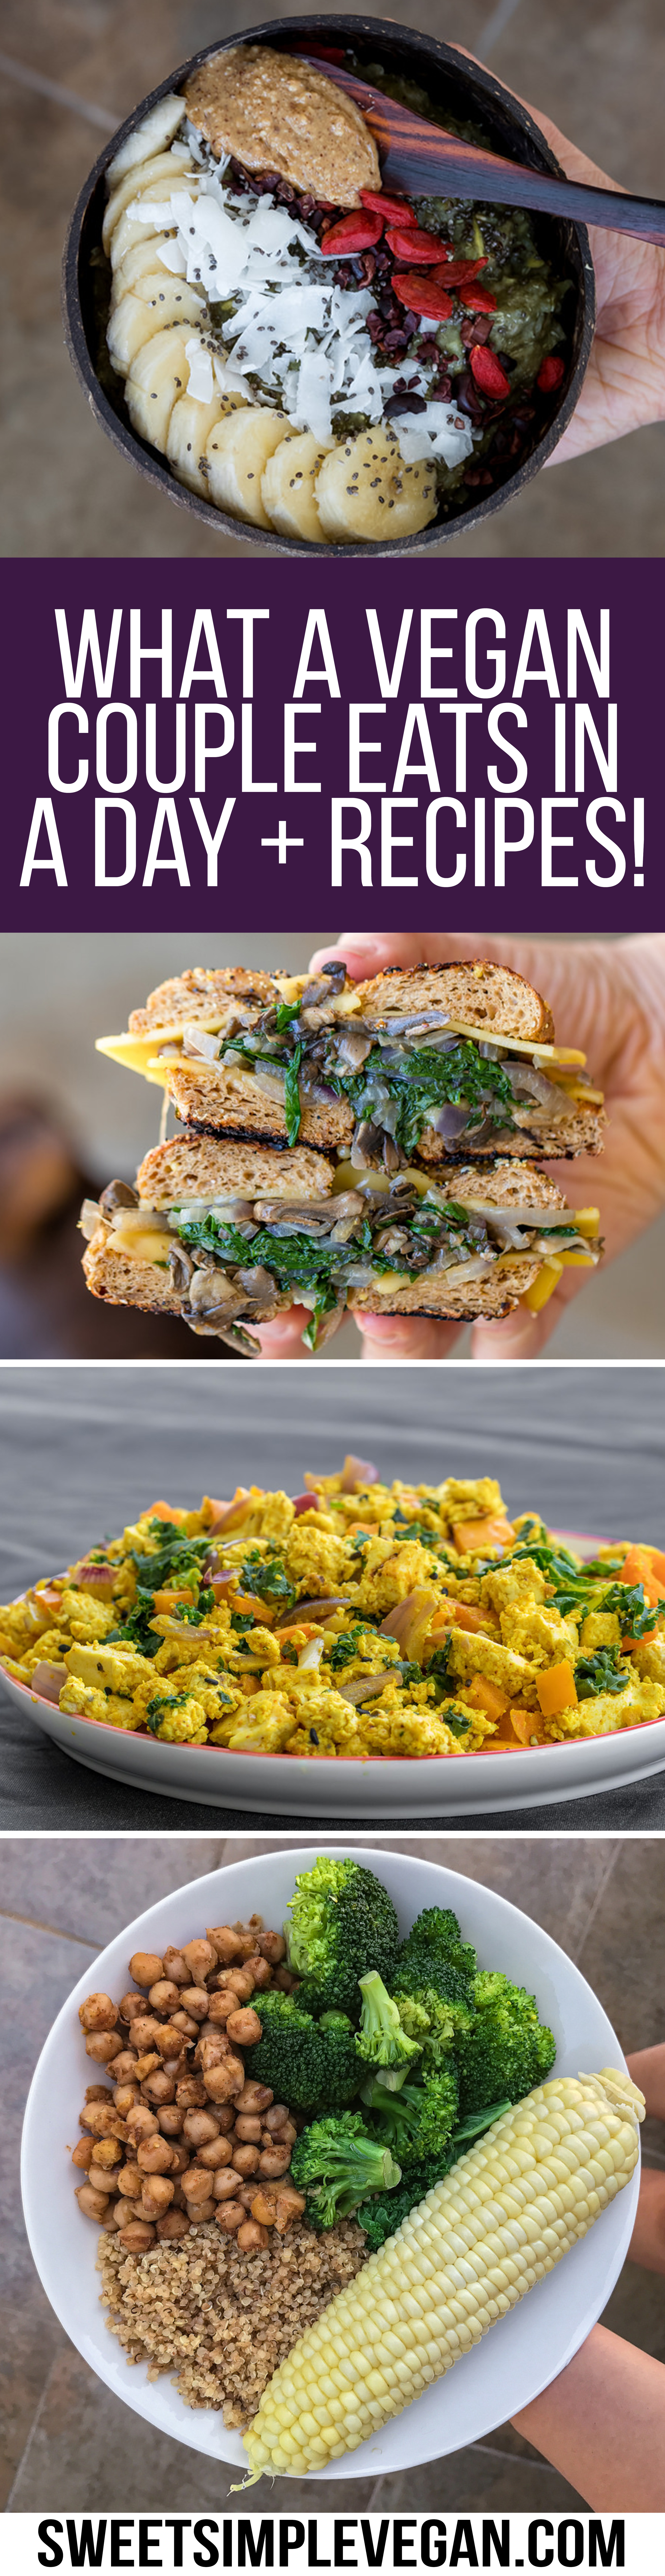 What A Vegan Couple Eats In Day Easy Recipes W Videos 2 Recipe Vegan Meal Plans Healthy Recipes Easy Healthy Dinners